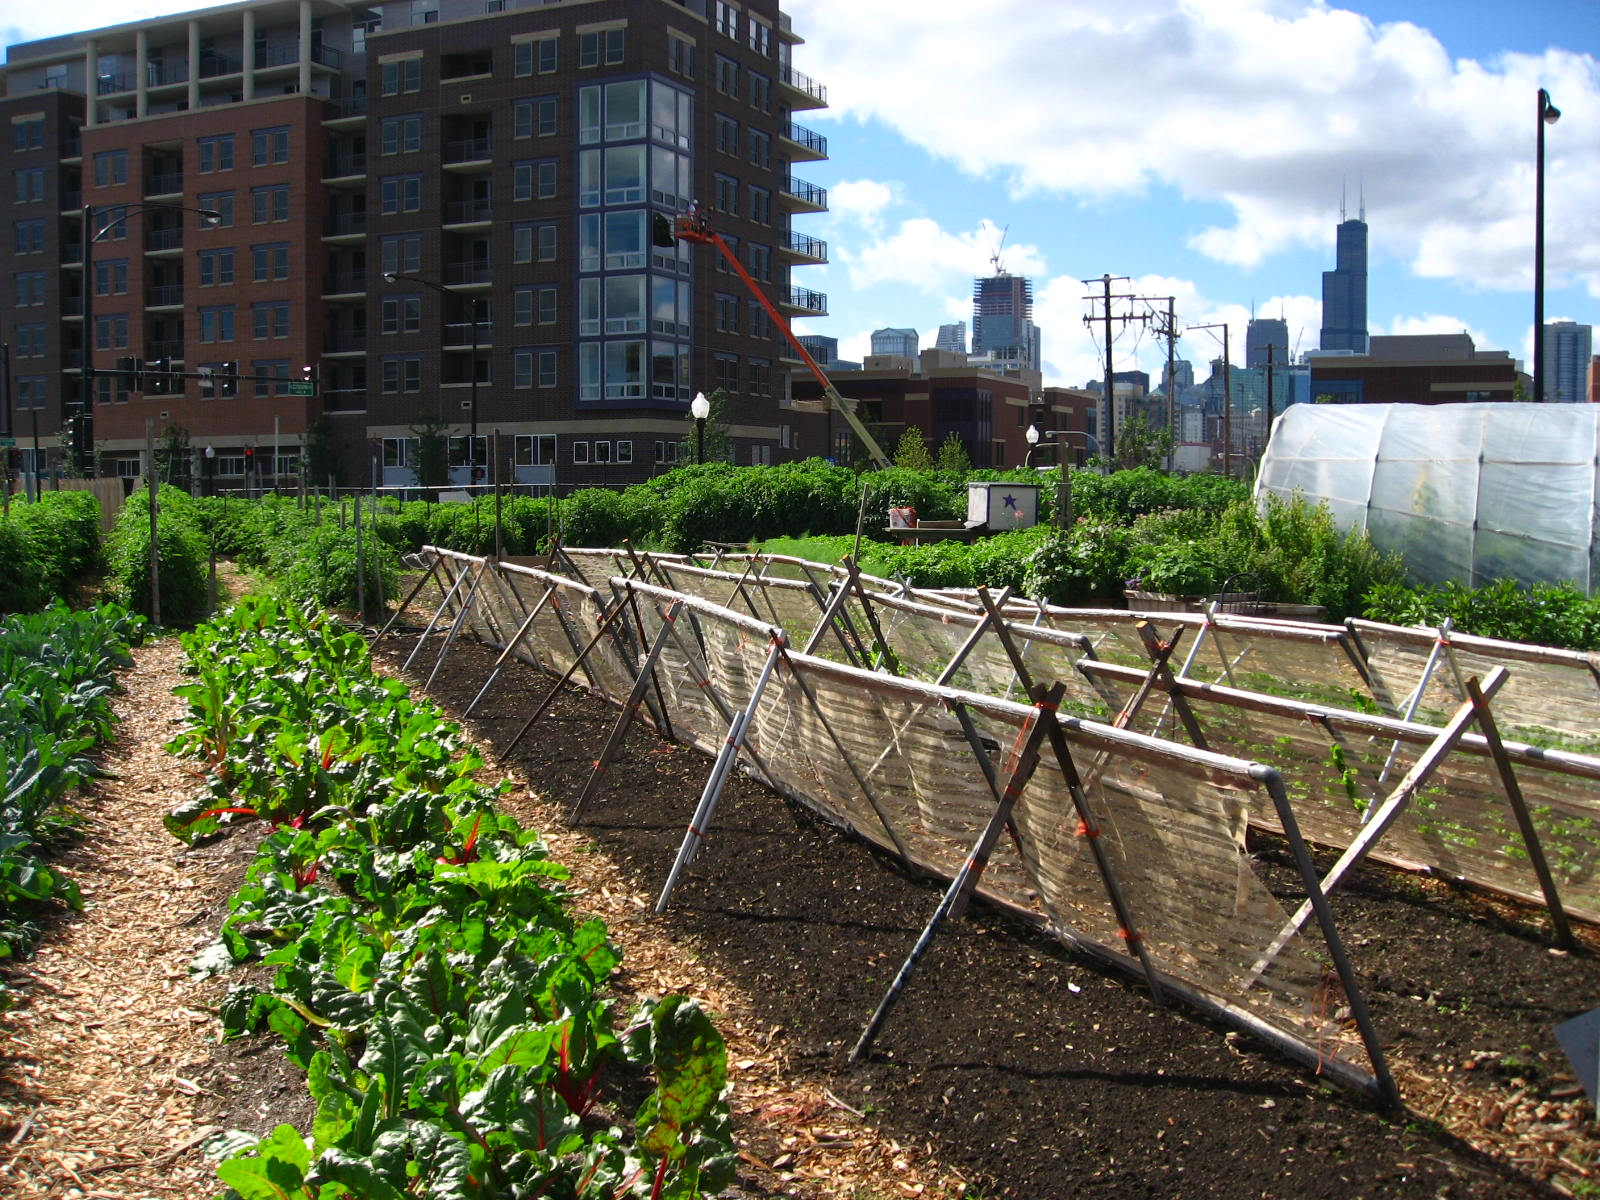 Harvesting data: The impacts of increased urban farming